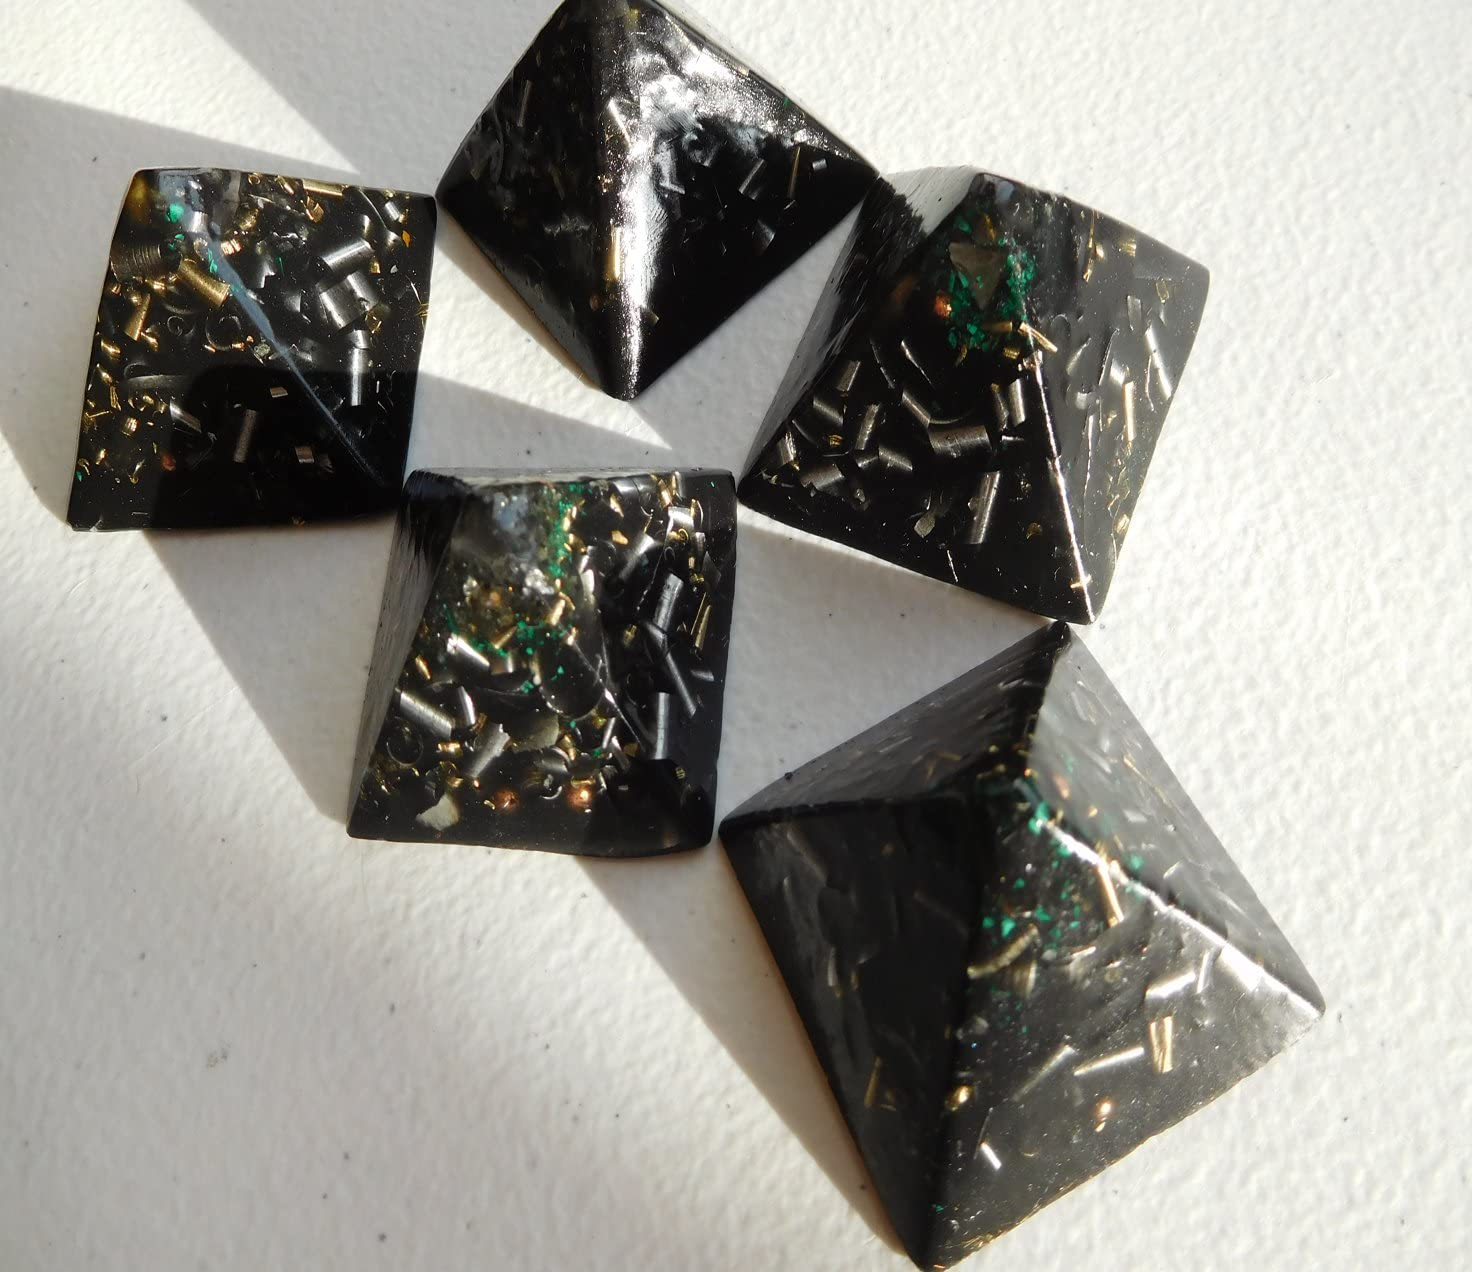 5 Black Sun Small Pyramids Energy Accumulator Generator M Orgone Challenge the lowest price of Online limited product Japan ☆